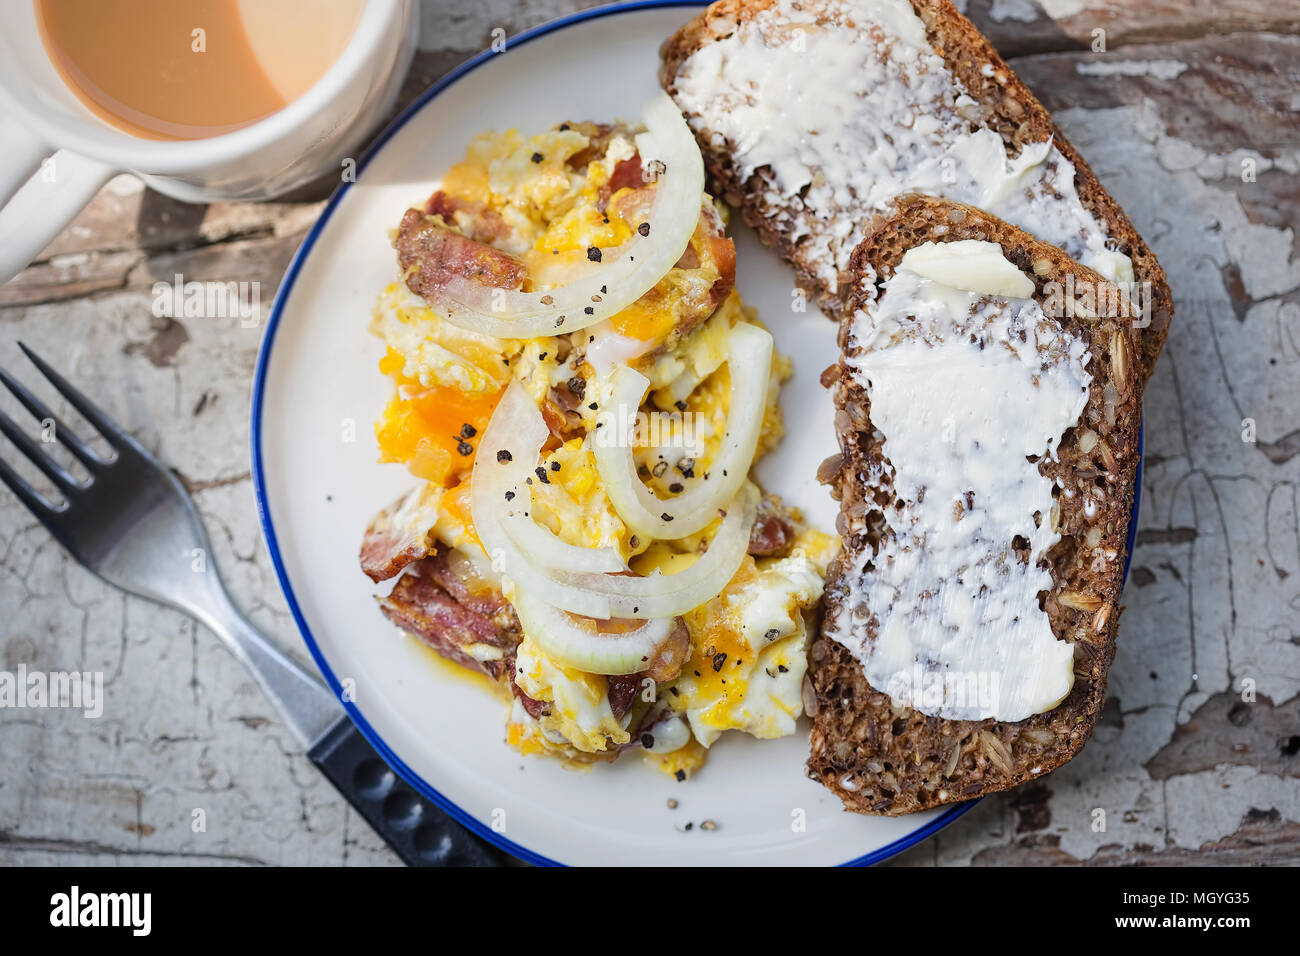 Scrambled eggs with bacon, sausage and onion with wholegrain bread and coffee - Stock Image